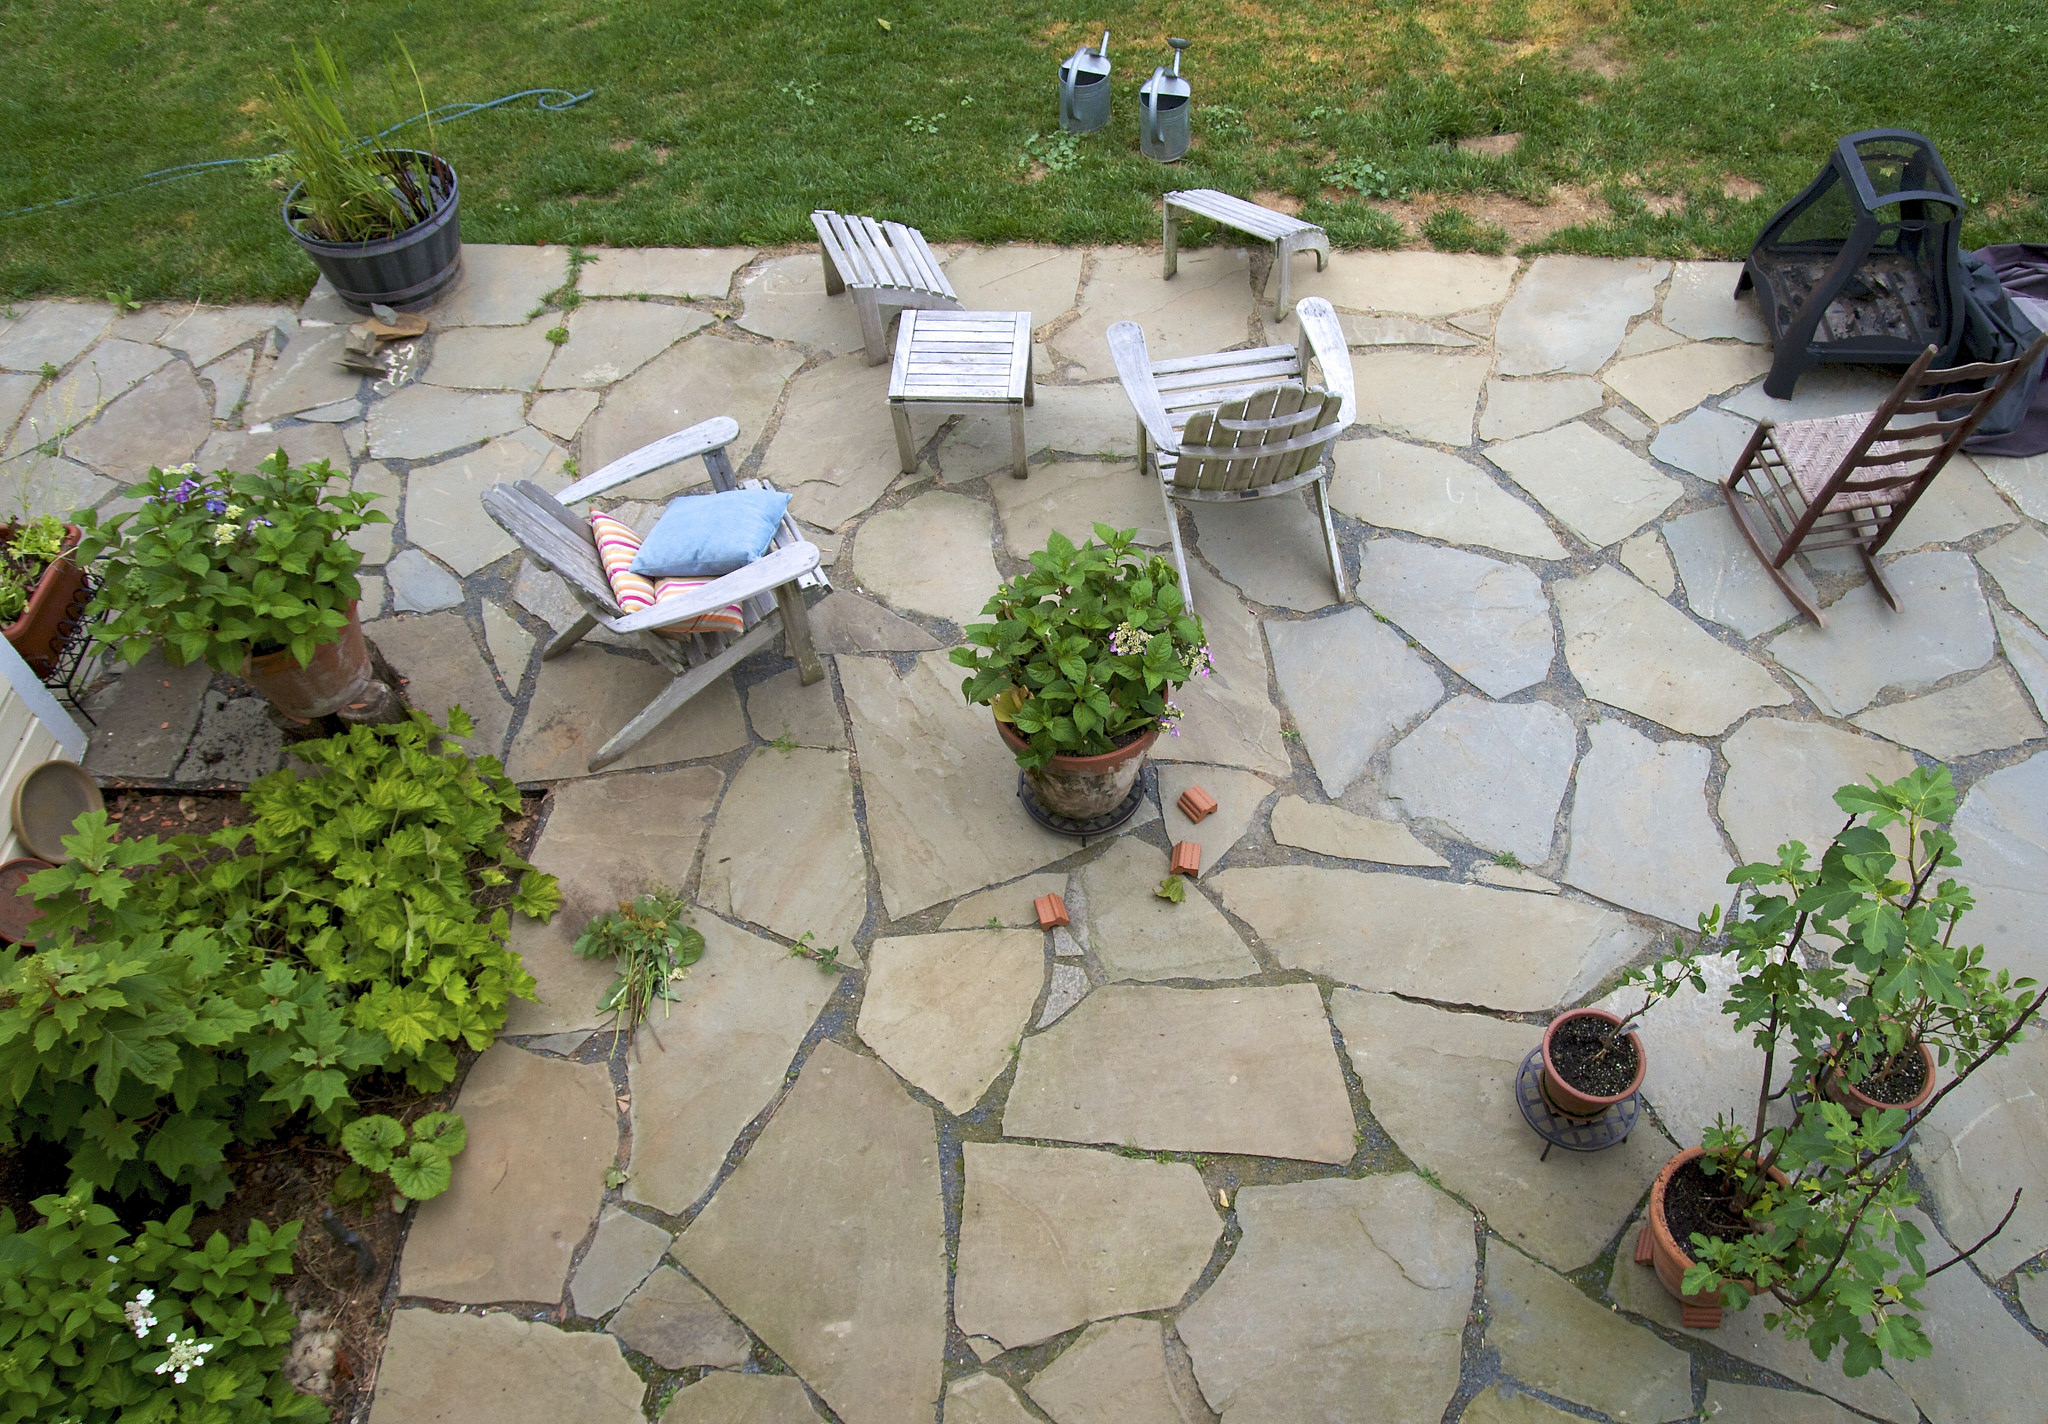 Learn 5 essentials for outdoor entertaining during the autumn months. Make the most of your patios and yards when throwing parties.